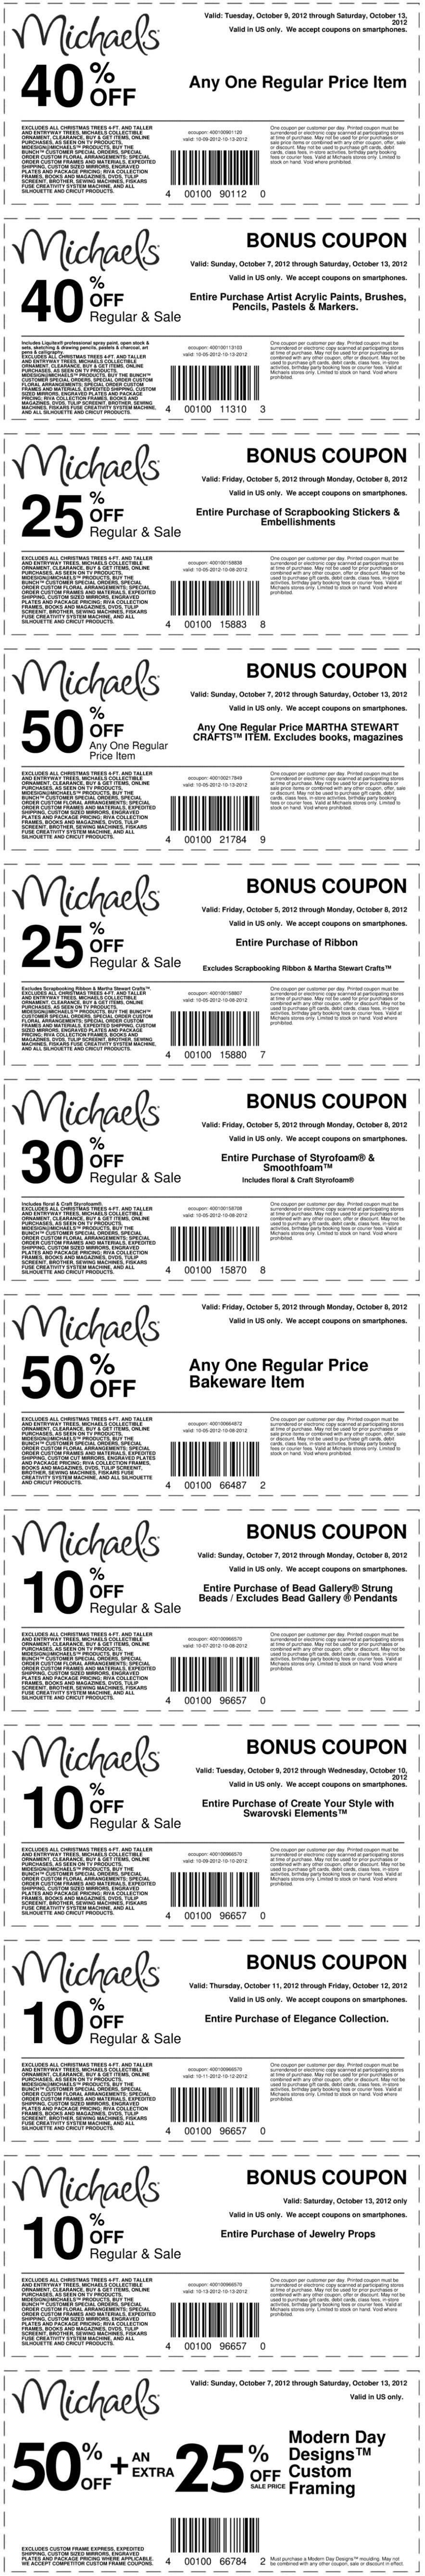 Michaels coupon money saving mom 174 - Saving Money Michaels 40 Off A Single Item And More At Michaels Crafts Coupon Via The